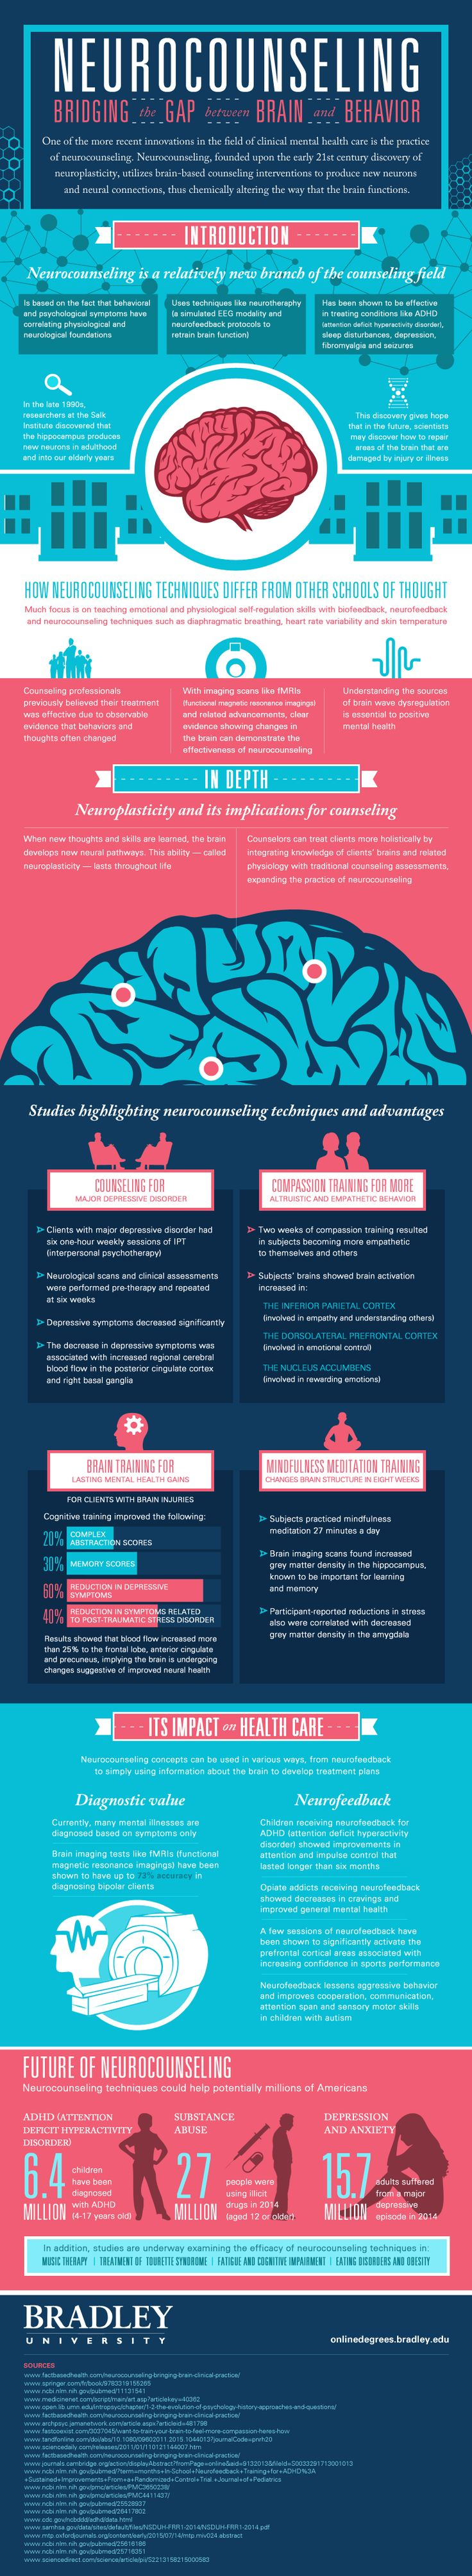 Neurocounseling: Bridging the Gap between Brain and Behavior Infographic - http://elearninginfographics.com/neurocounseling-bridging-gap-brain-behavior-infographic/